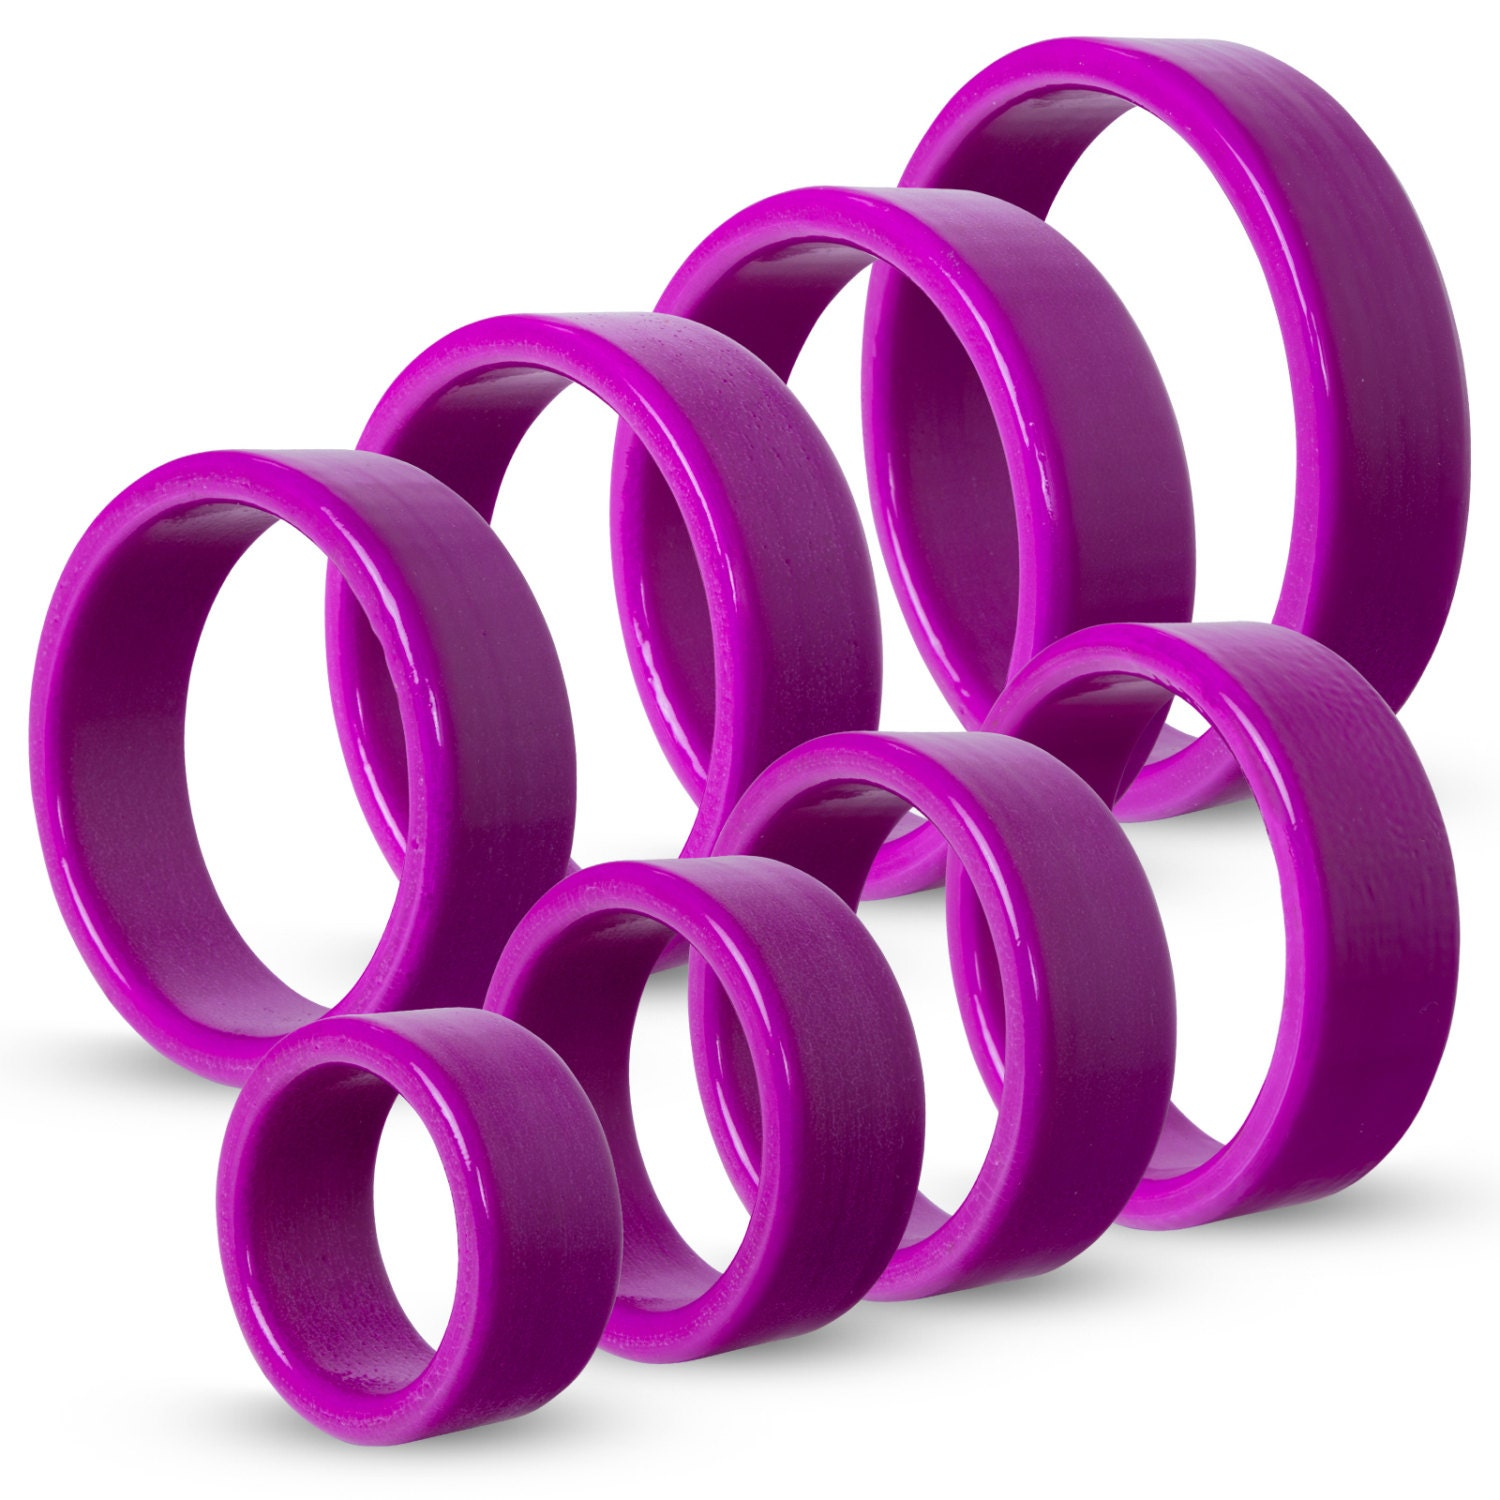 Decorative Cock Ring Leluv Cock Ring 3d Printed Male Erection Enhancer Lightweight